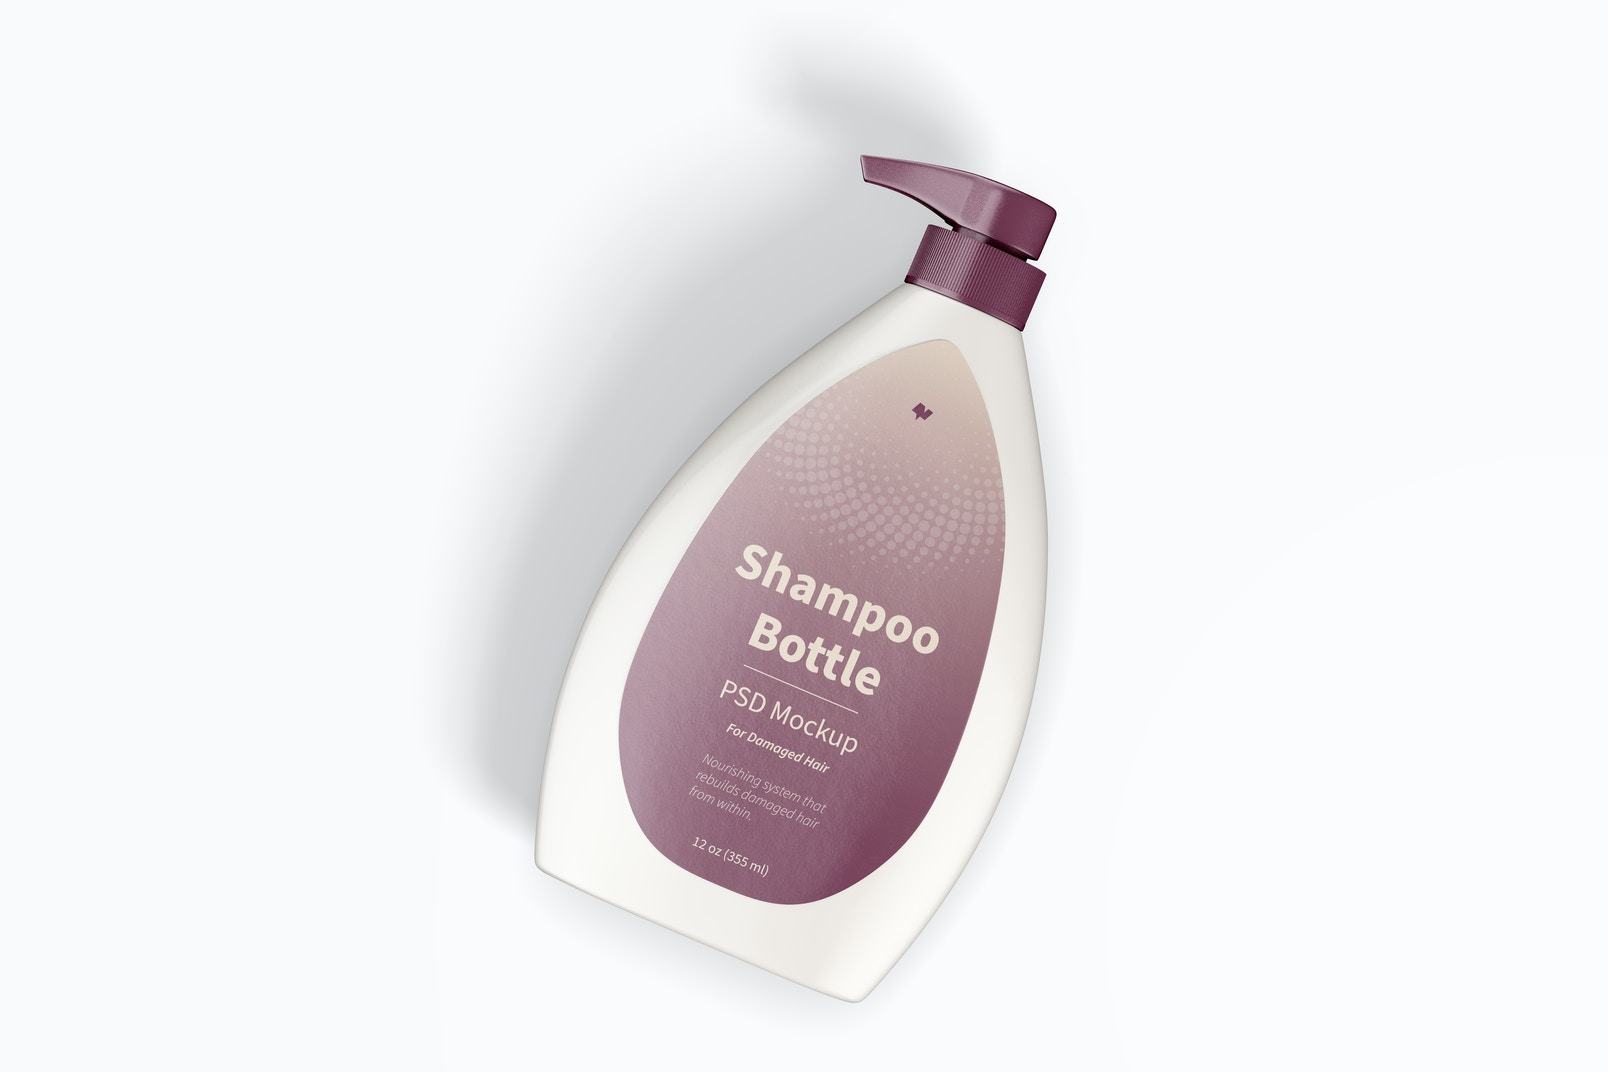 Shampoo Bottle with Pump Mockup, Top View